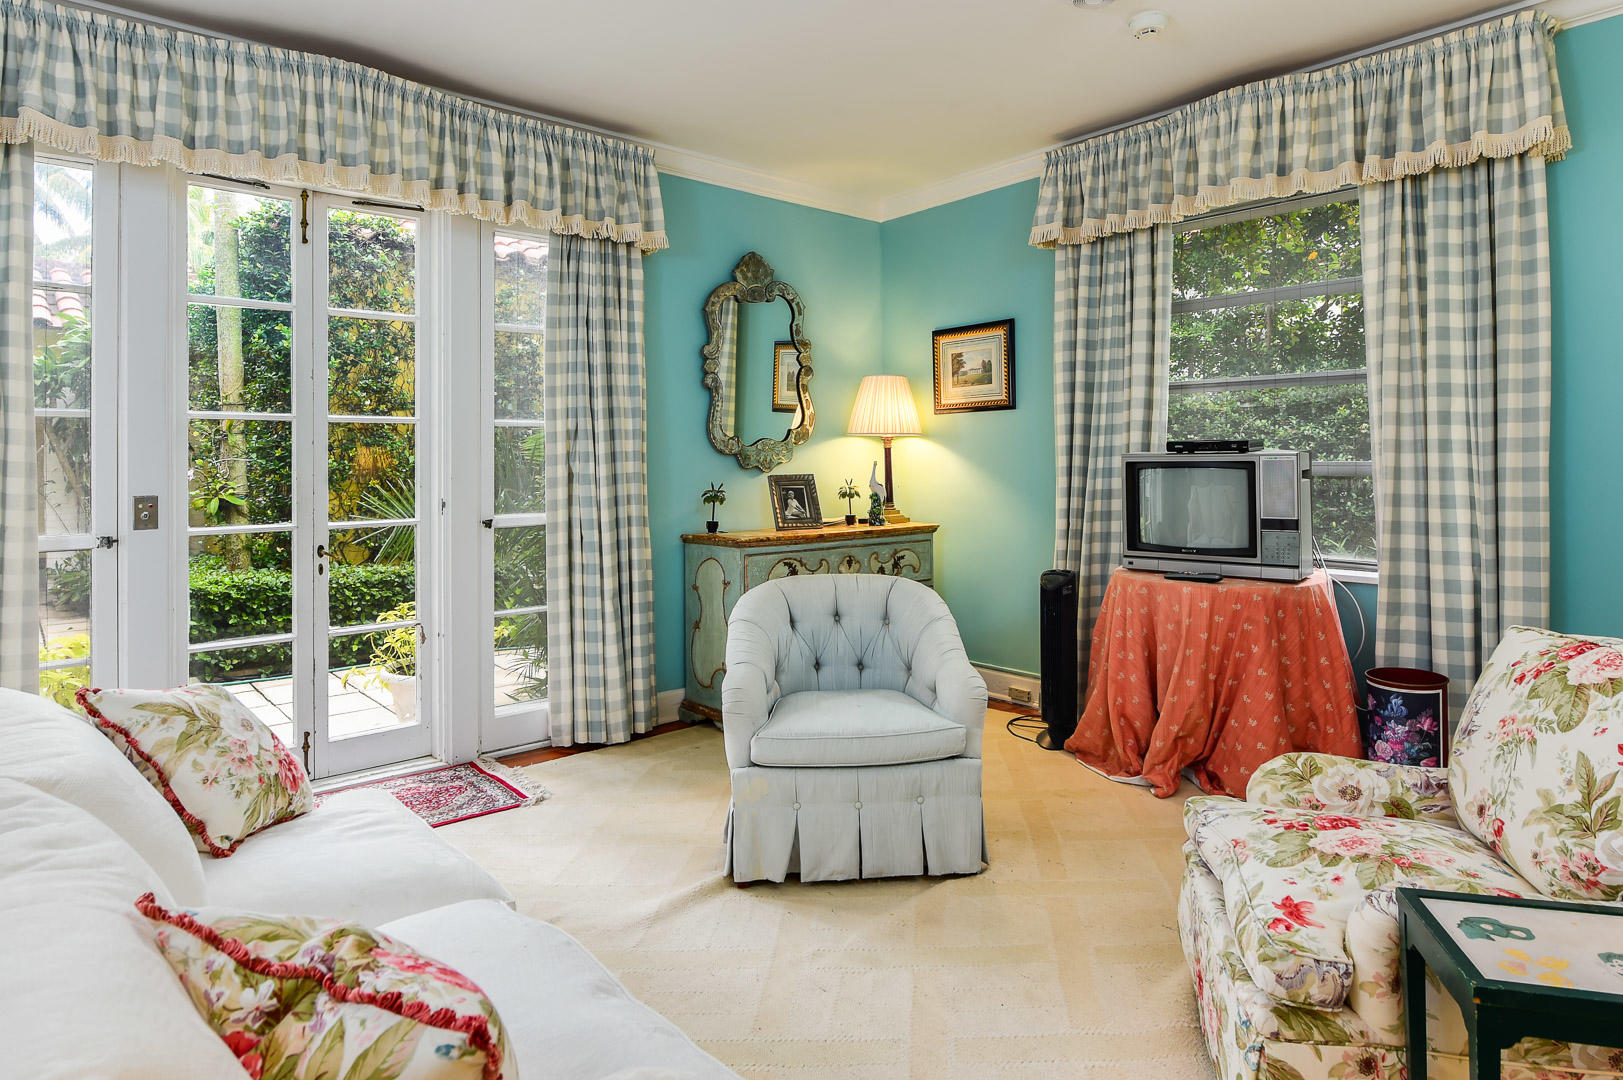 6 Golfview Road, Palm Beach, Florida 33480, 7 Bedrooms Bedrooms, ,10.2 BathroomsBathrooms,Single Family,For Sale,Golfview,RX-10486006